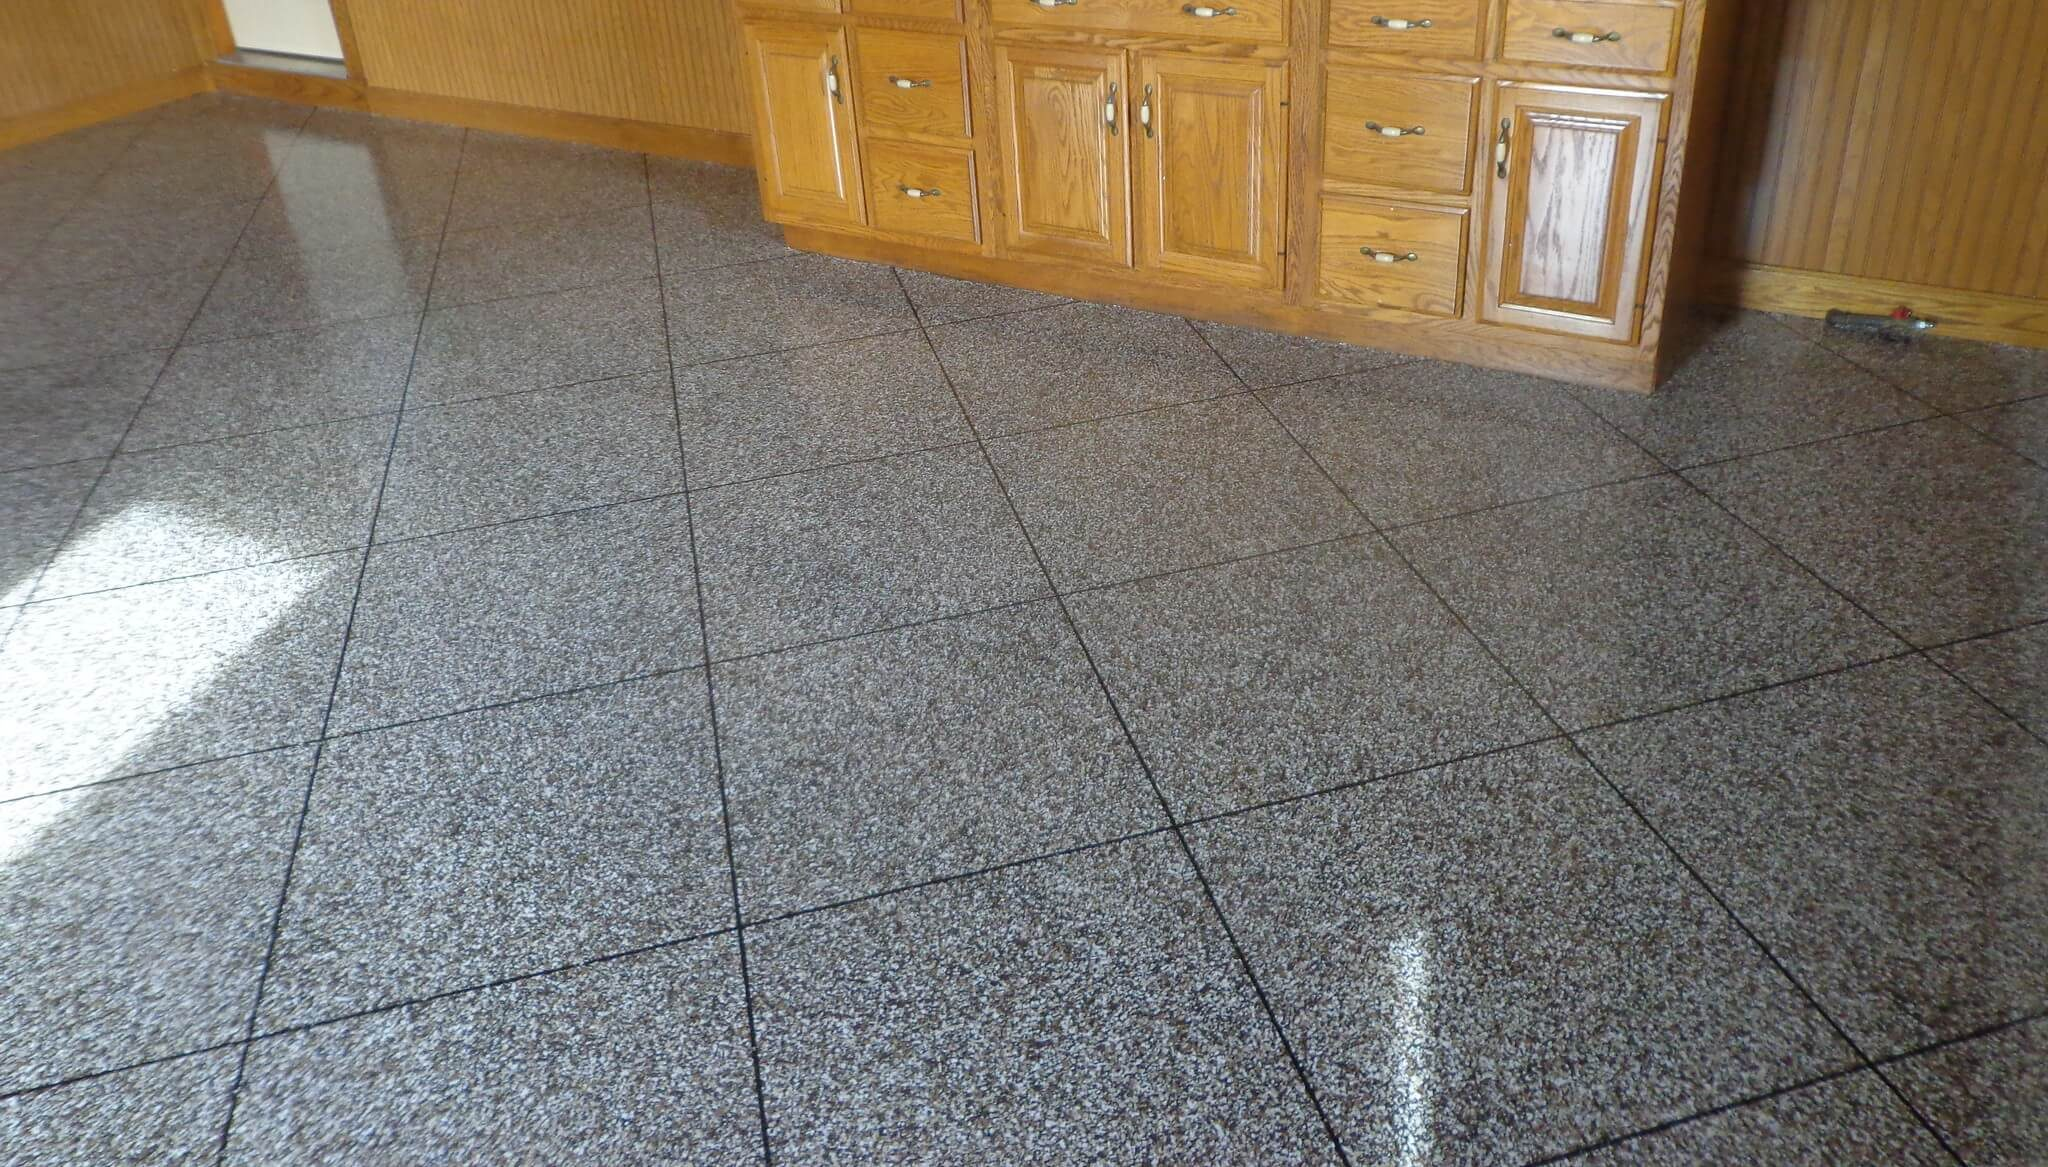 Factors that Influence the Cost of Epoxy Flooring